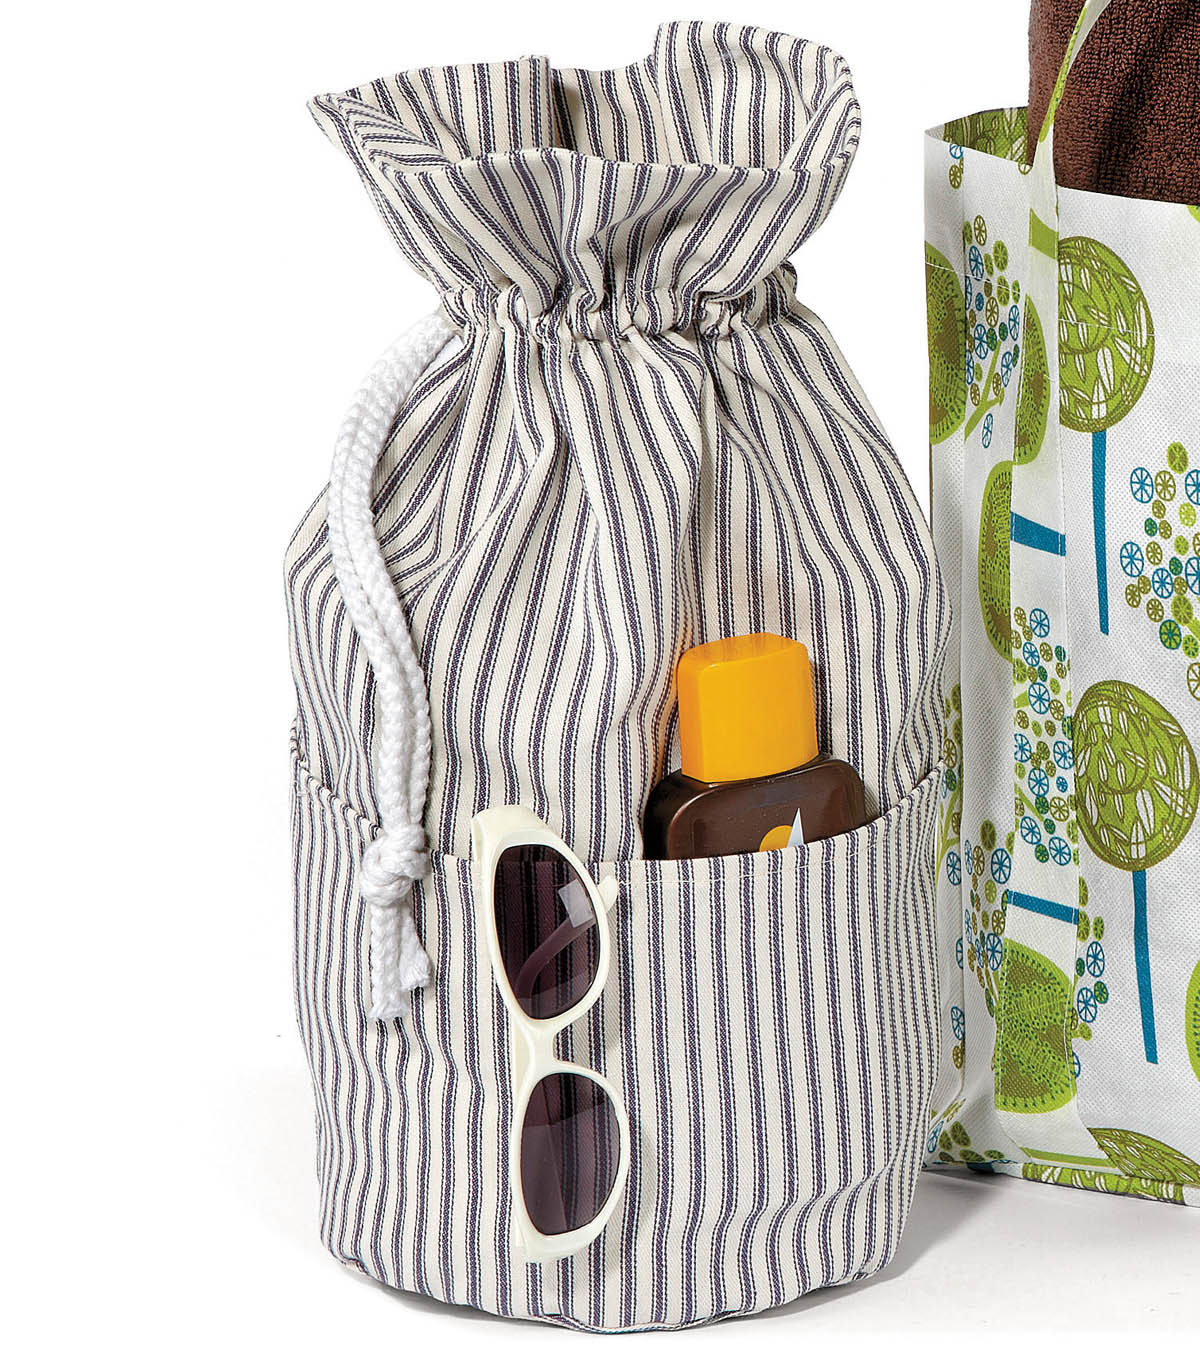 Utility Fabric Tote Bag